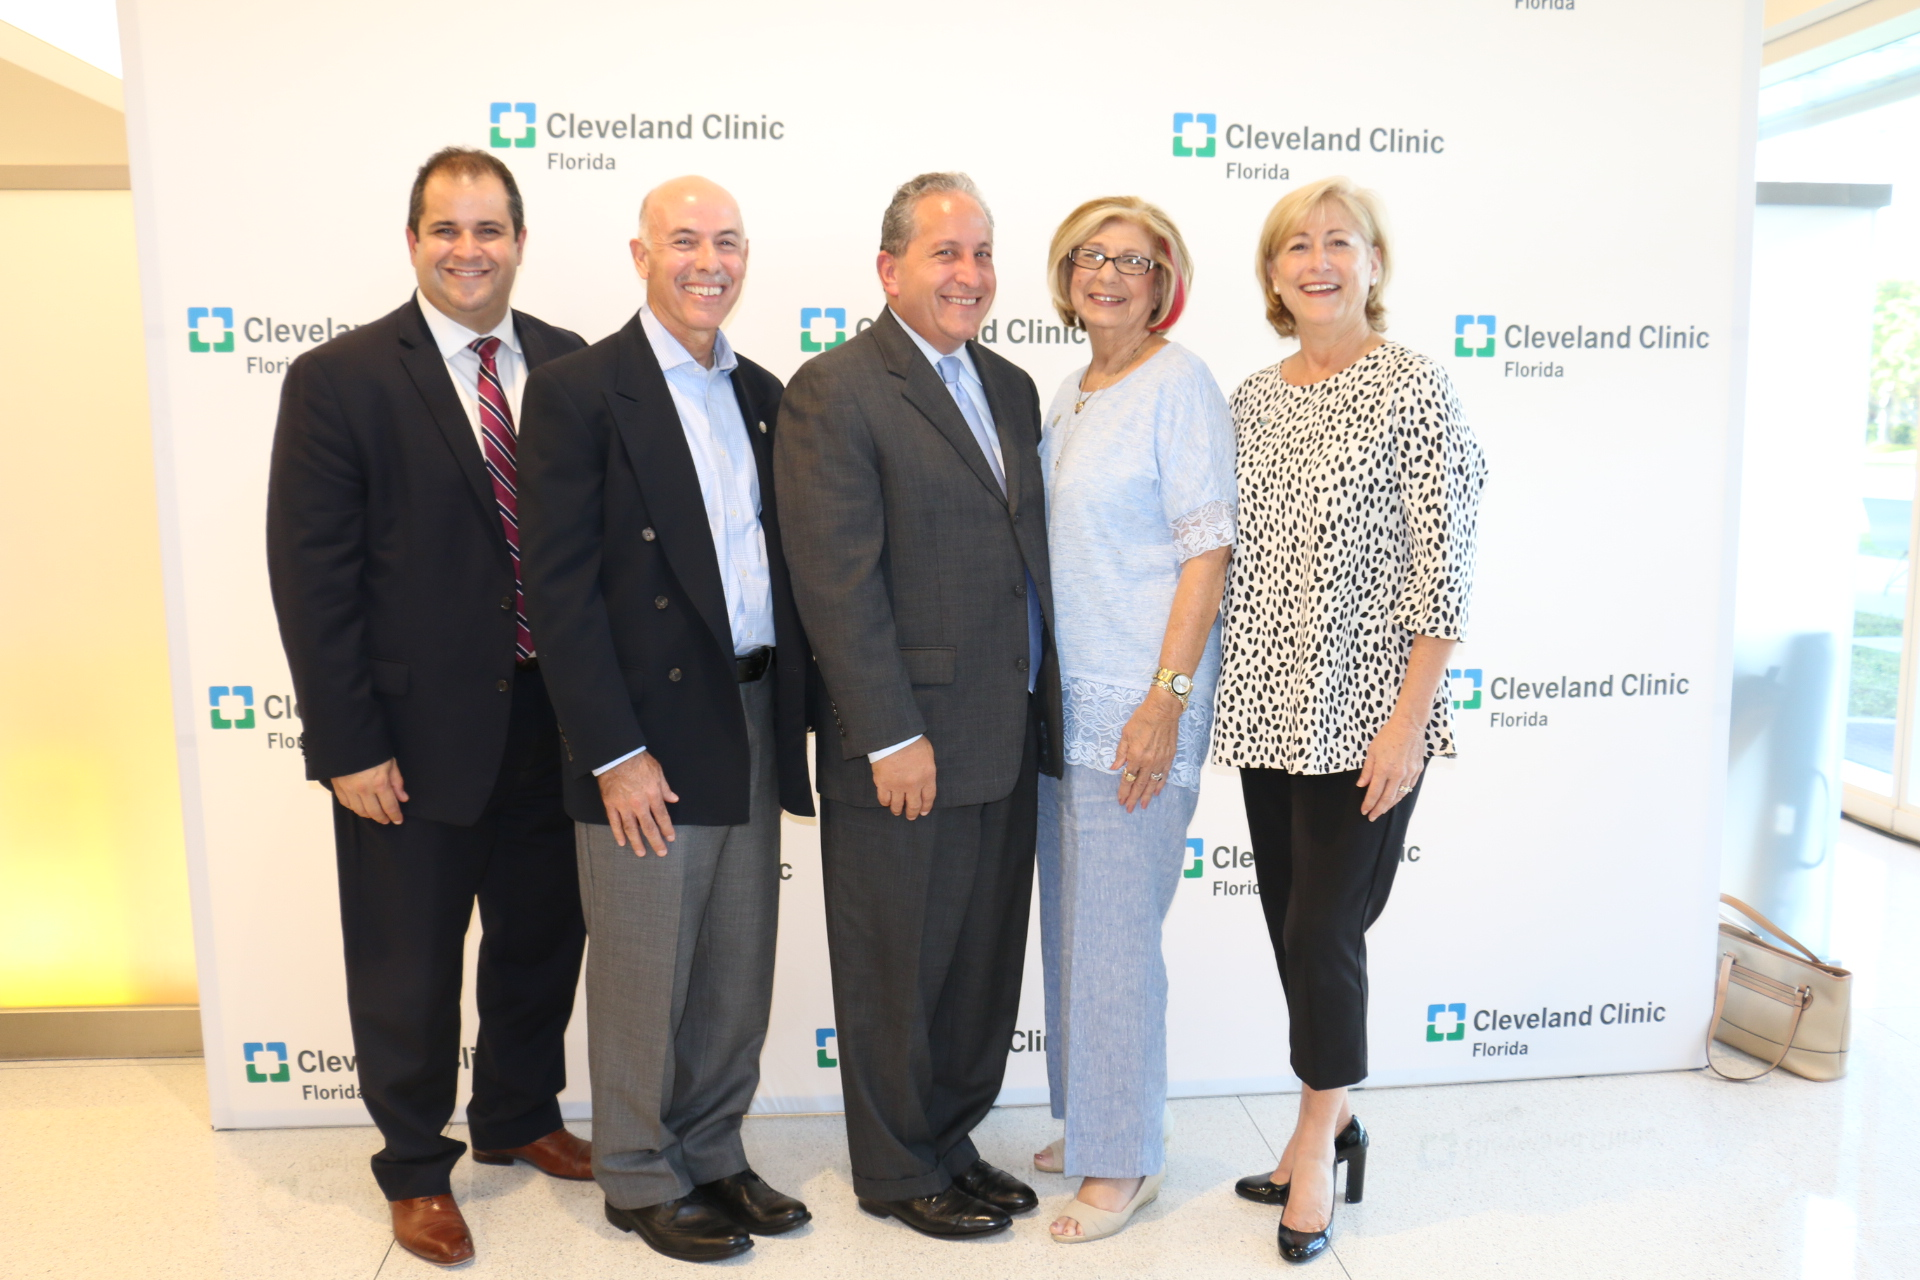 weston city commission with cleveland clinic florida ceo ozzie delgado